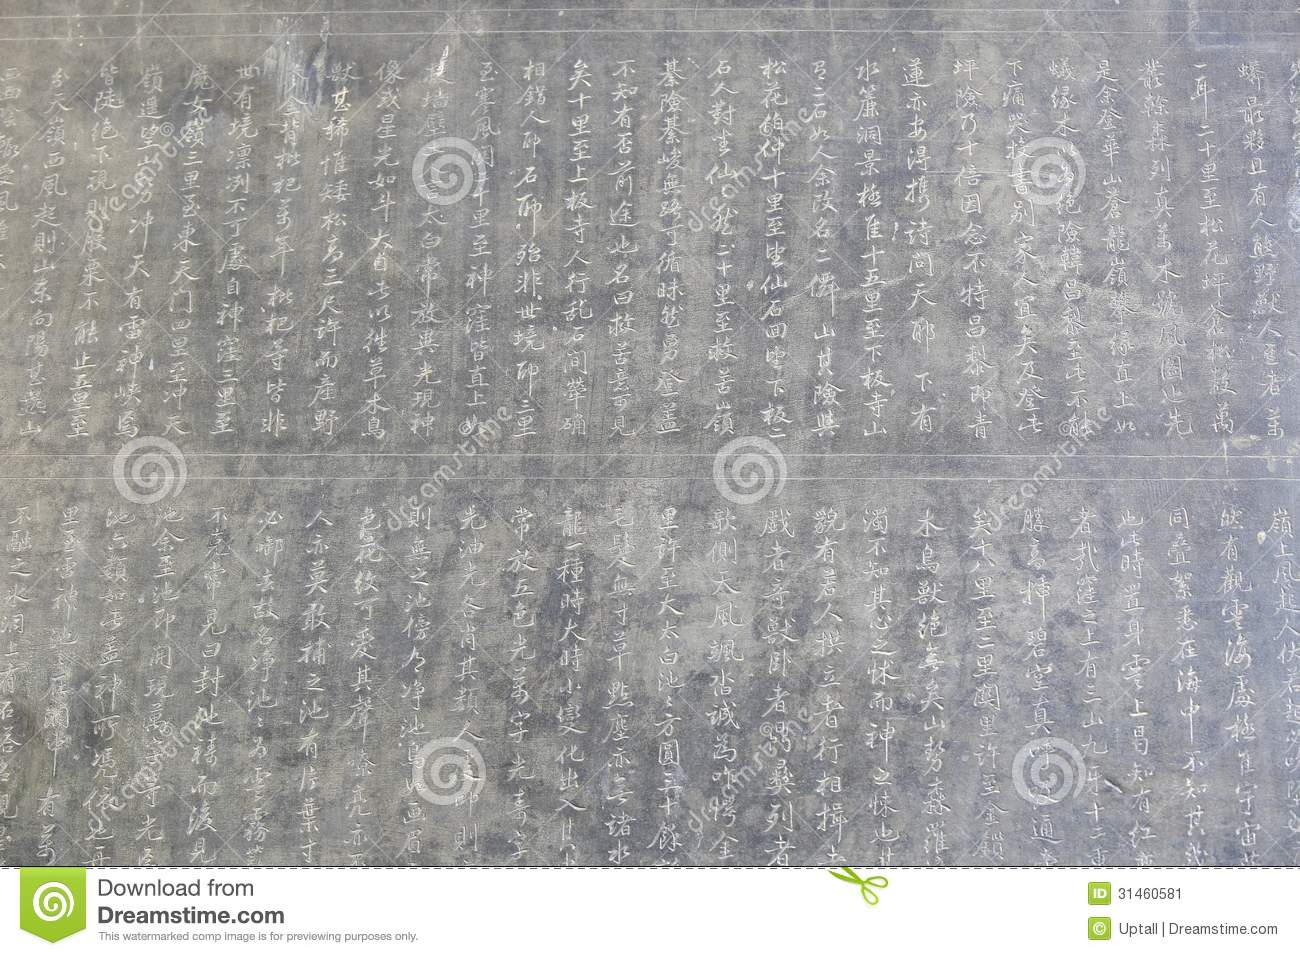 Ancient chinese calligraphy art stock image image 31460581 Ancient china calligraphy